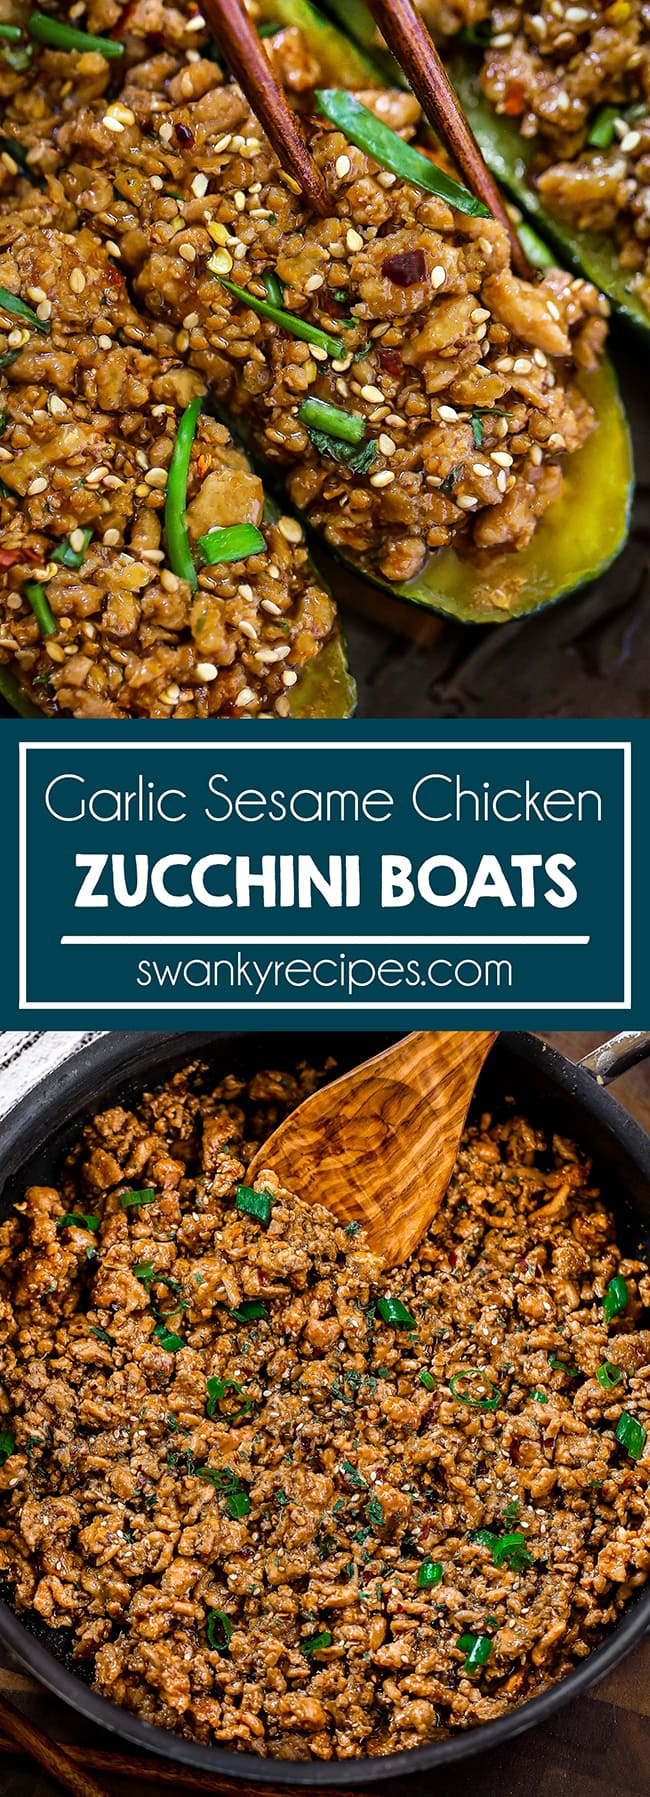 Garlic Sesame Chicken Zucchini Boats - 20 minute Asian stuffed zucchini Boats in a rich Garlic Sesame sauce with honey, garlic, and soy sauce. A sweet and tangy ground chicken recipe with zucchini boats.